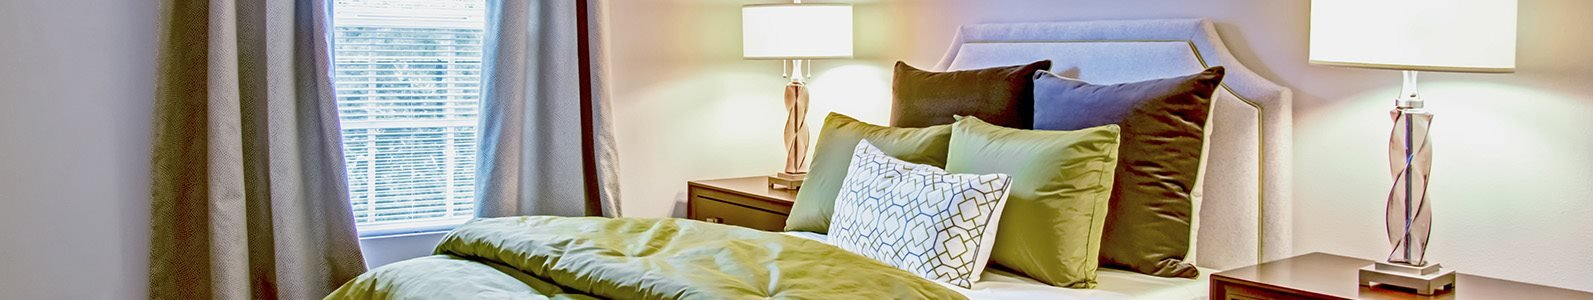 Electric Heating and Cooling at Heron Pointe, Nashville, TN